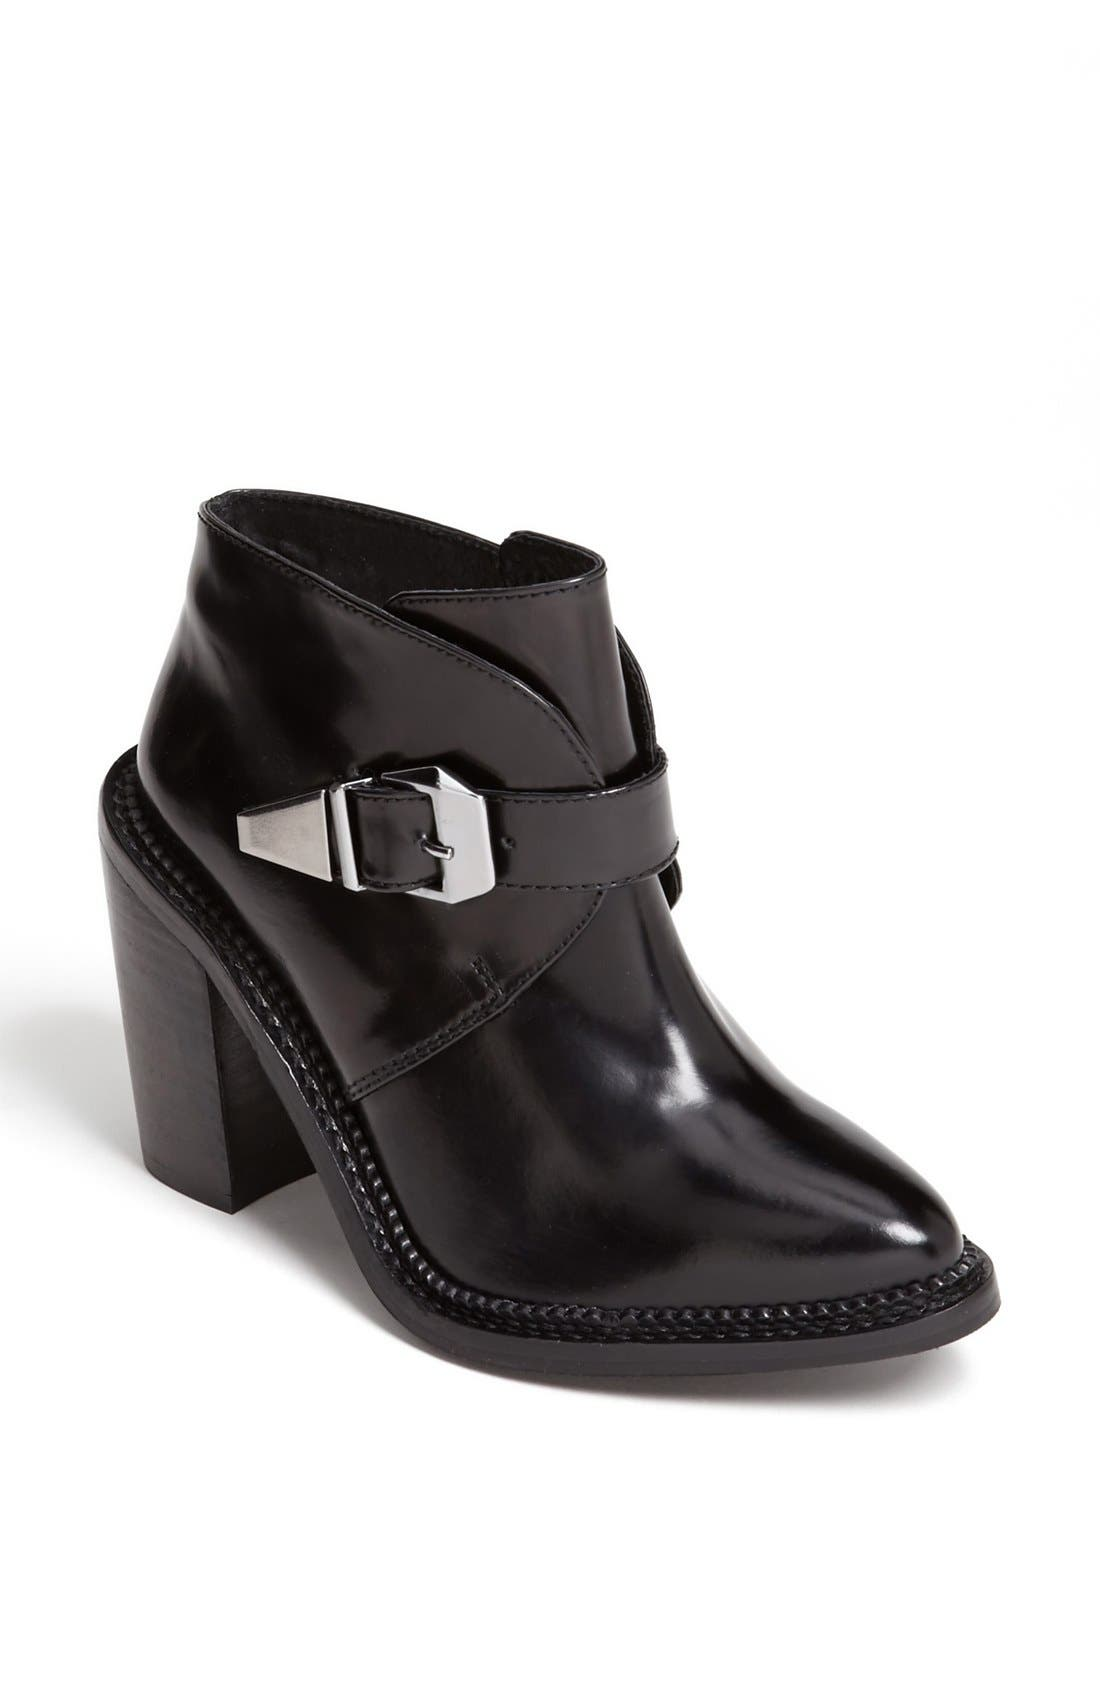 Alternate Image 1 Selected - Topshop 'Aleta' Monk Strap Boot